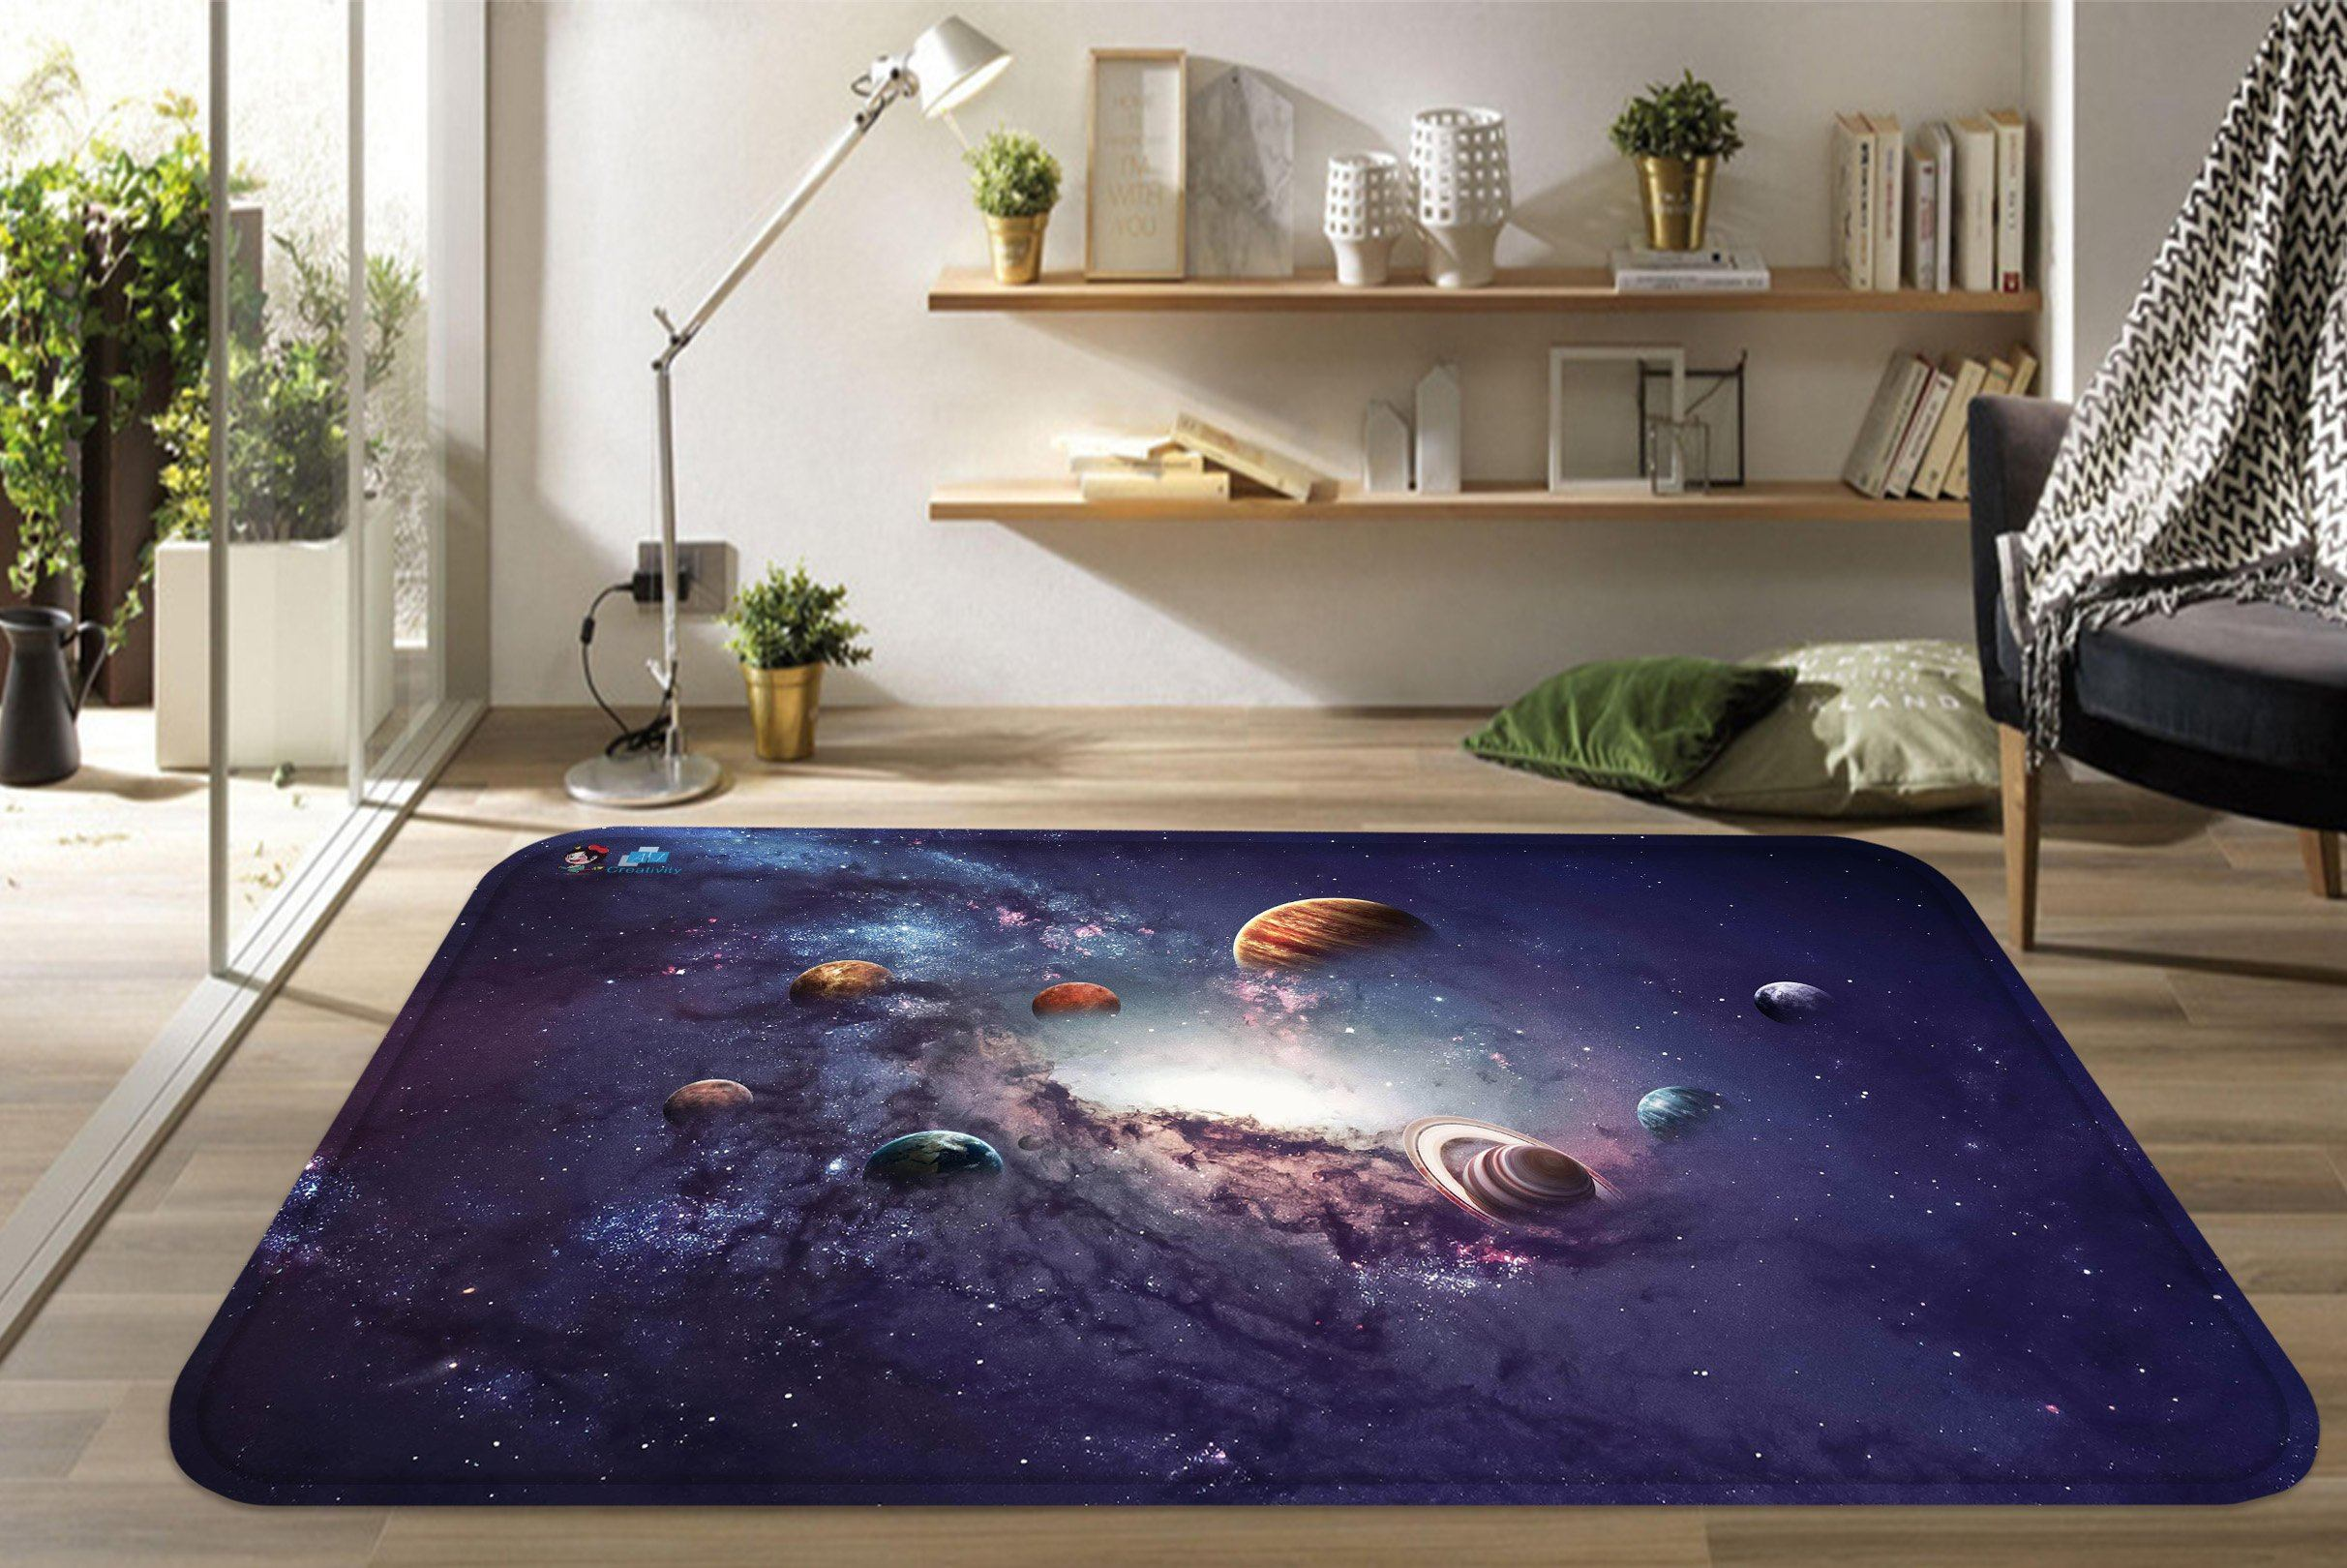 3D Space Planets 87 Non Slip Rug Mat Mat AJ Creativity Home